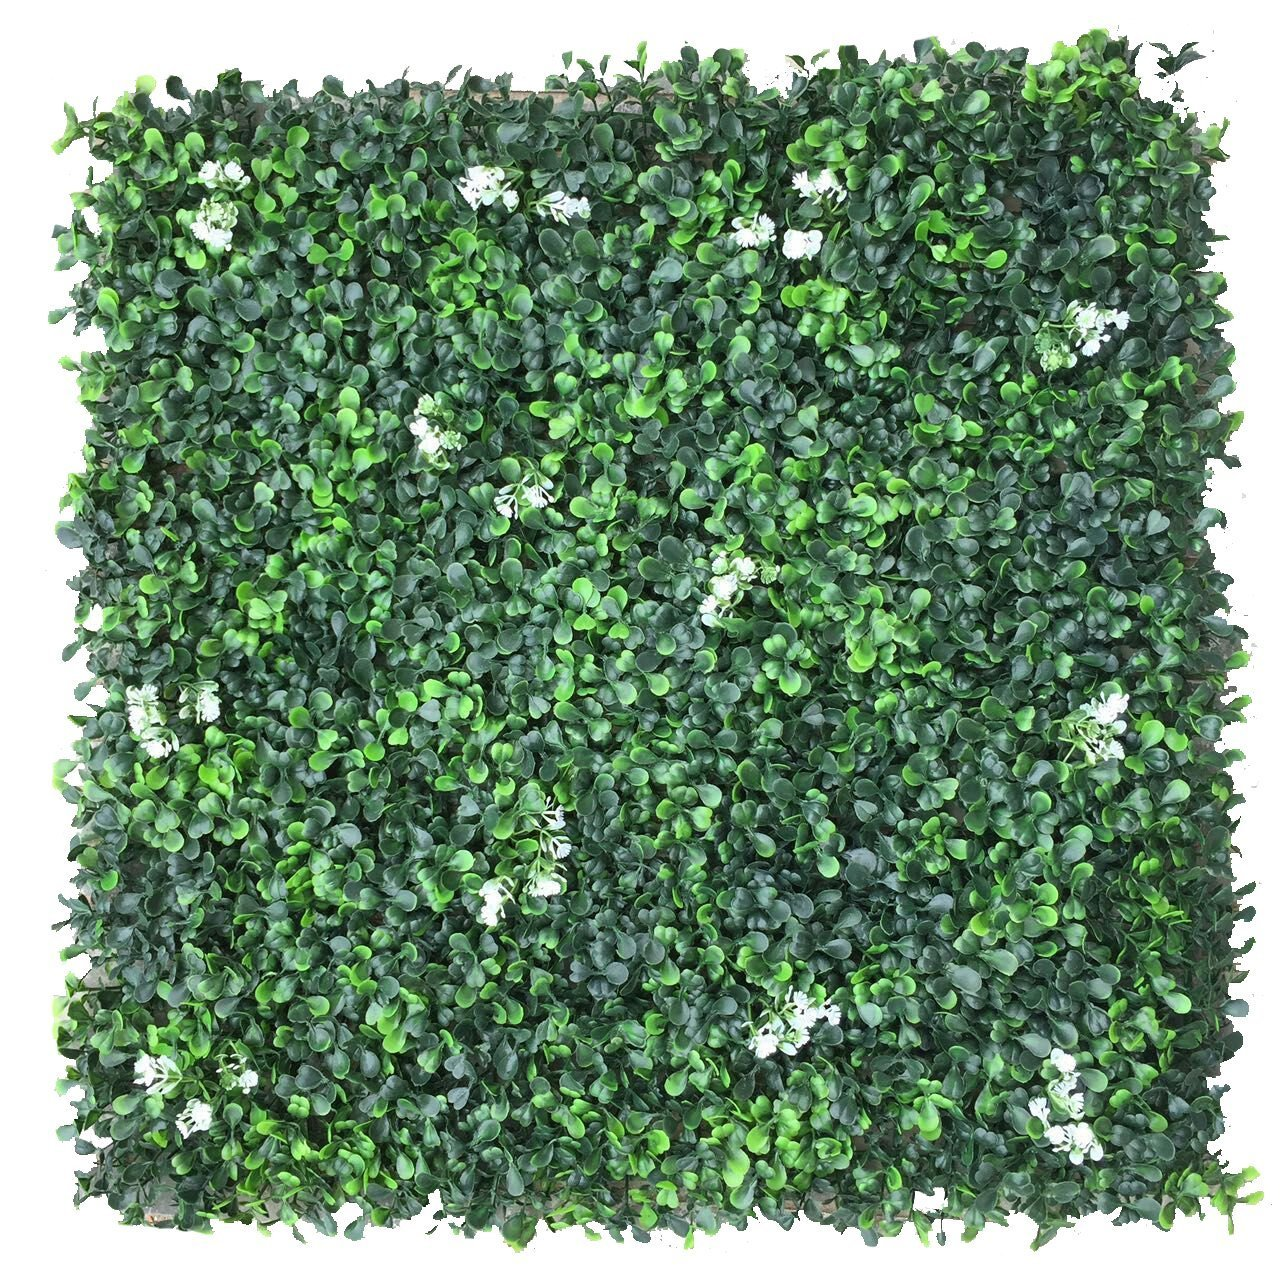 e-joy 24 Piece Cover 66 sq. ft. Artificial Topiary Hedge Plant Privacy Fence Screen Greenery Panels for Both Outdoor or Indoor, Garden or Backyard Decorations, Milan Flower